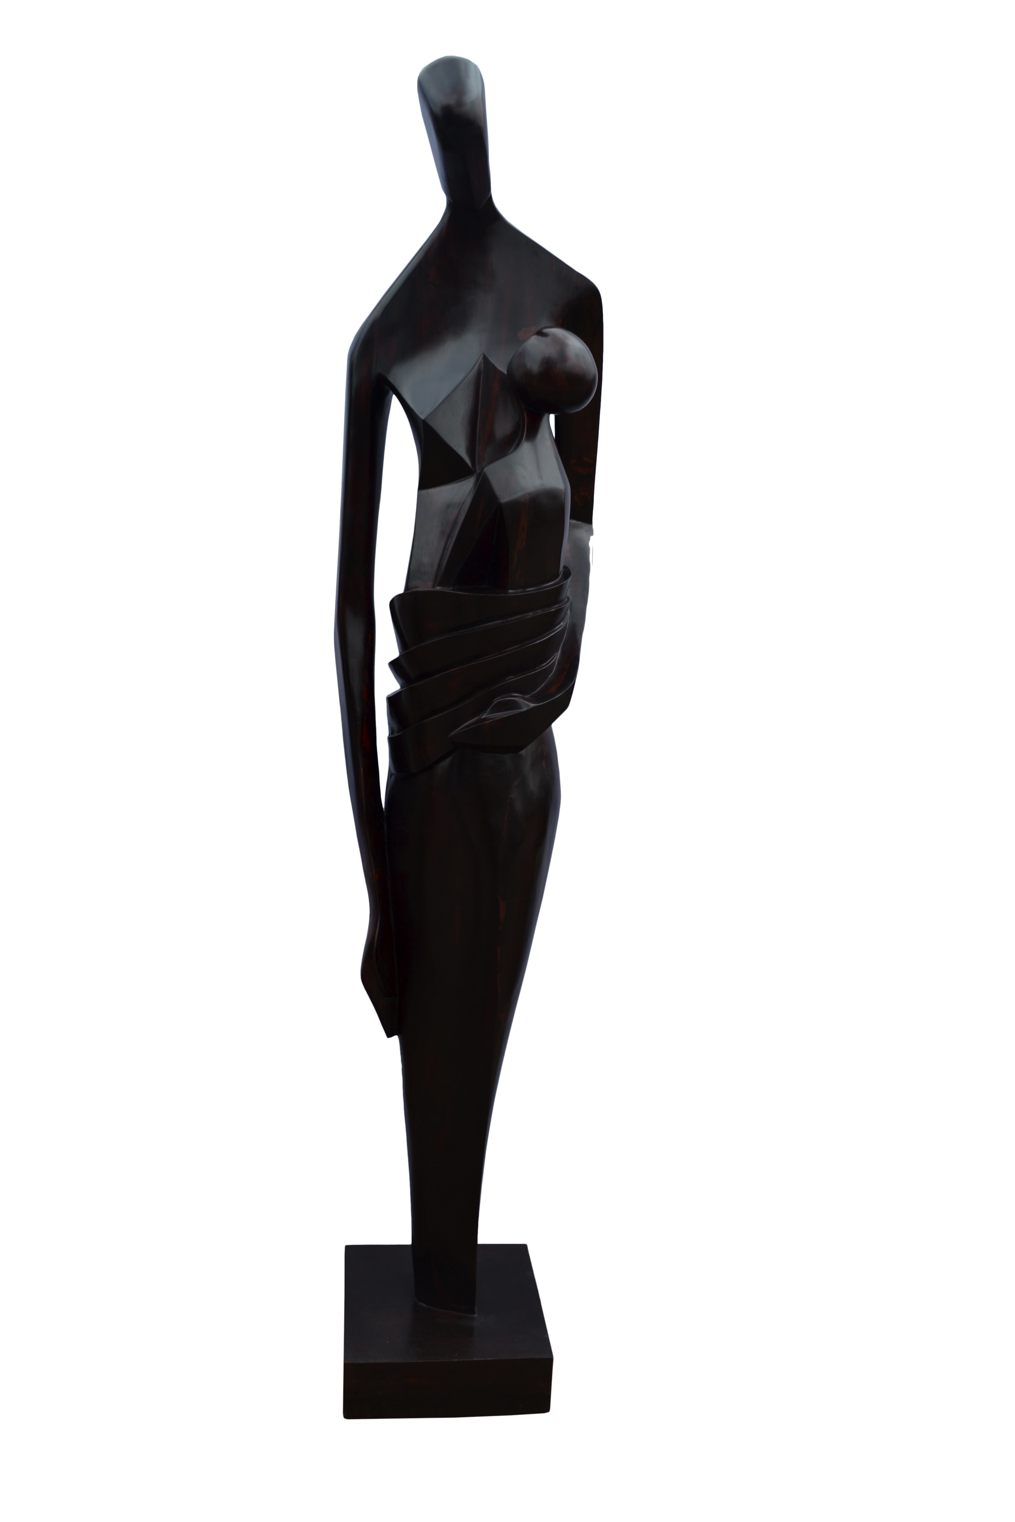 Symbaiosis (Wood) 2011-2014, Height + Base 79 Inches (1)